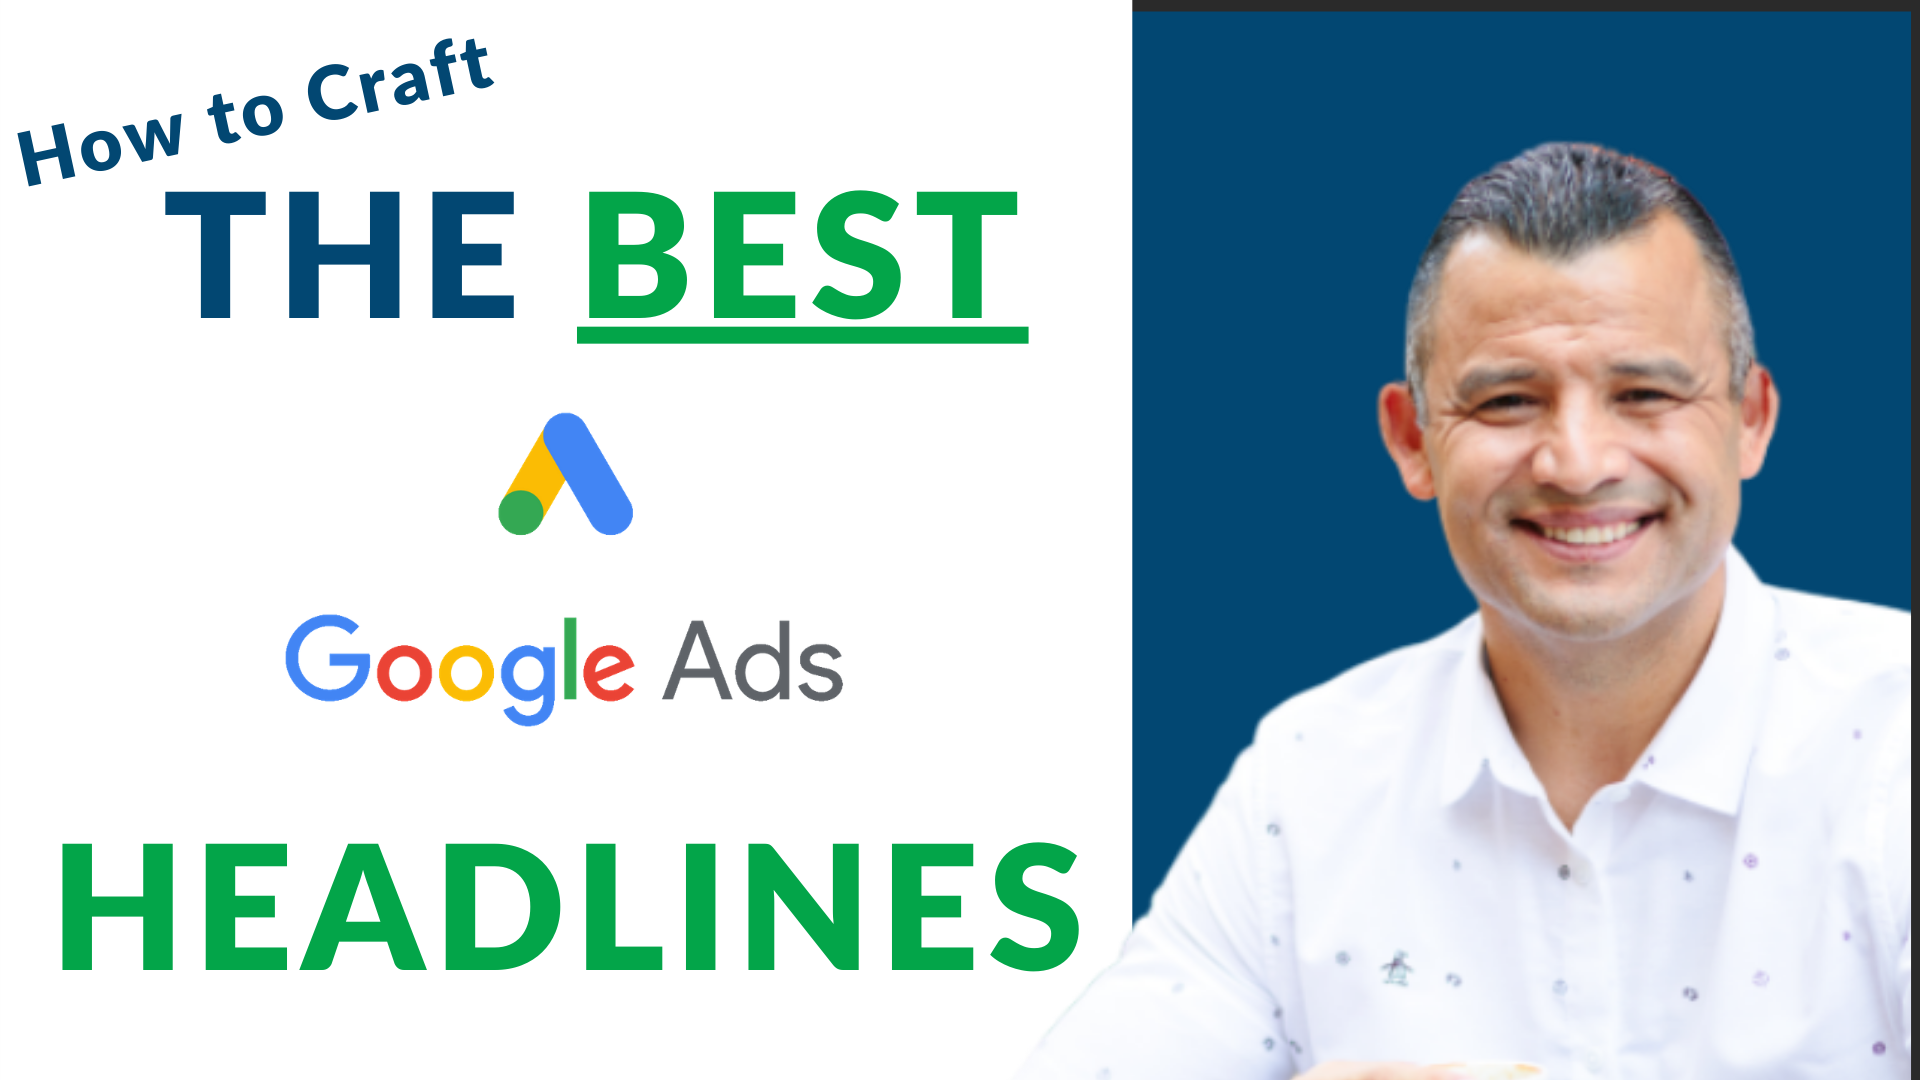 Write The Best Headline For Google Ads Quickly